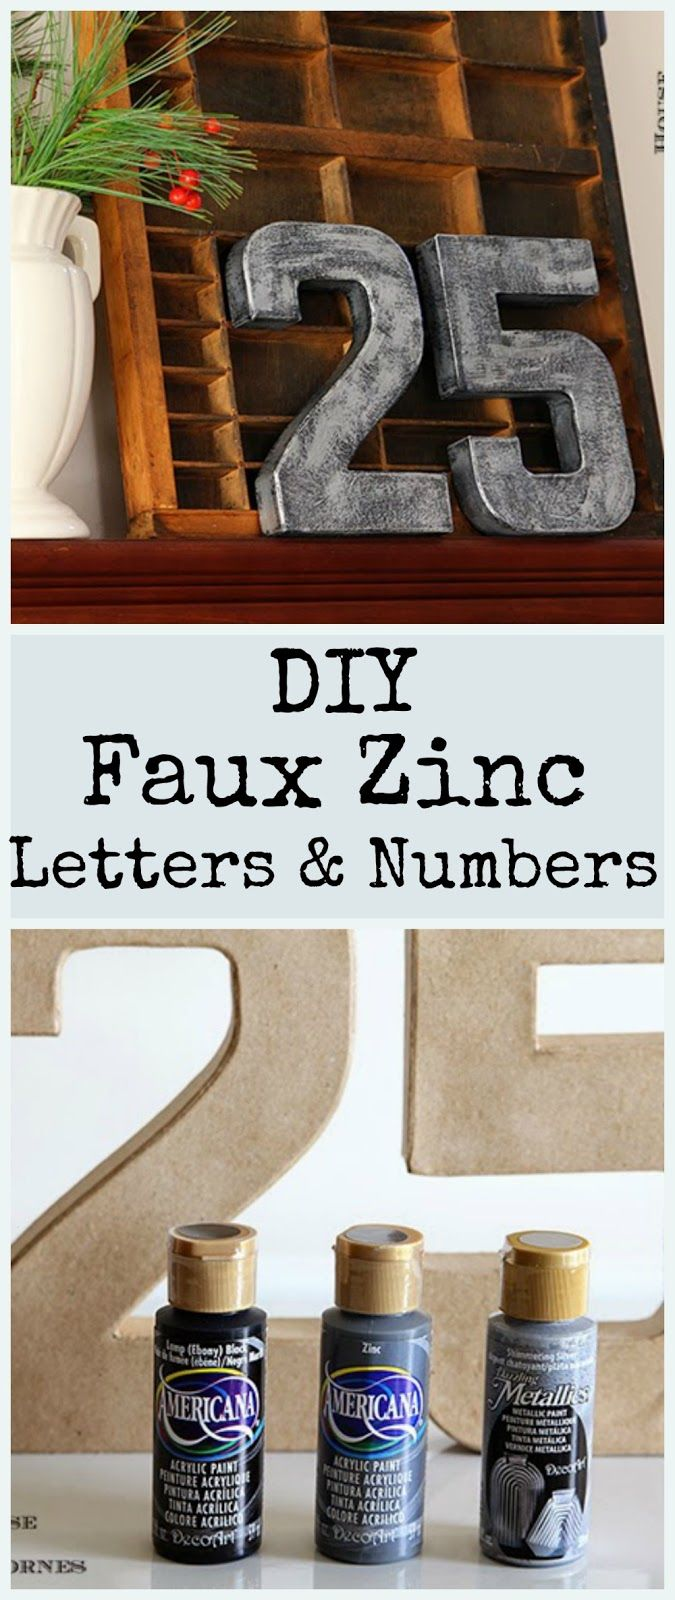 """DIY faux zinc letters and numbers - great industrial look. Use """"25"""" for Christmas decor too!"""